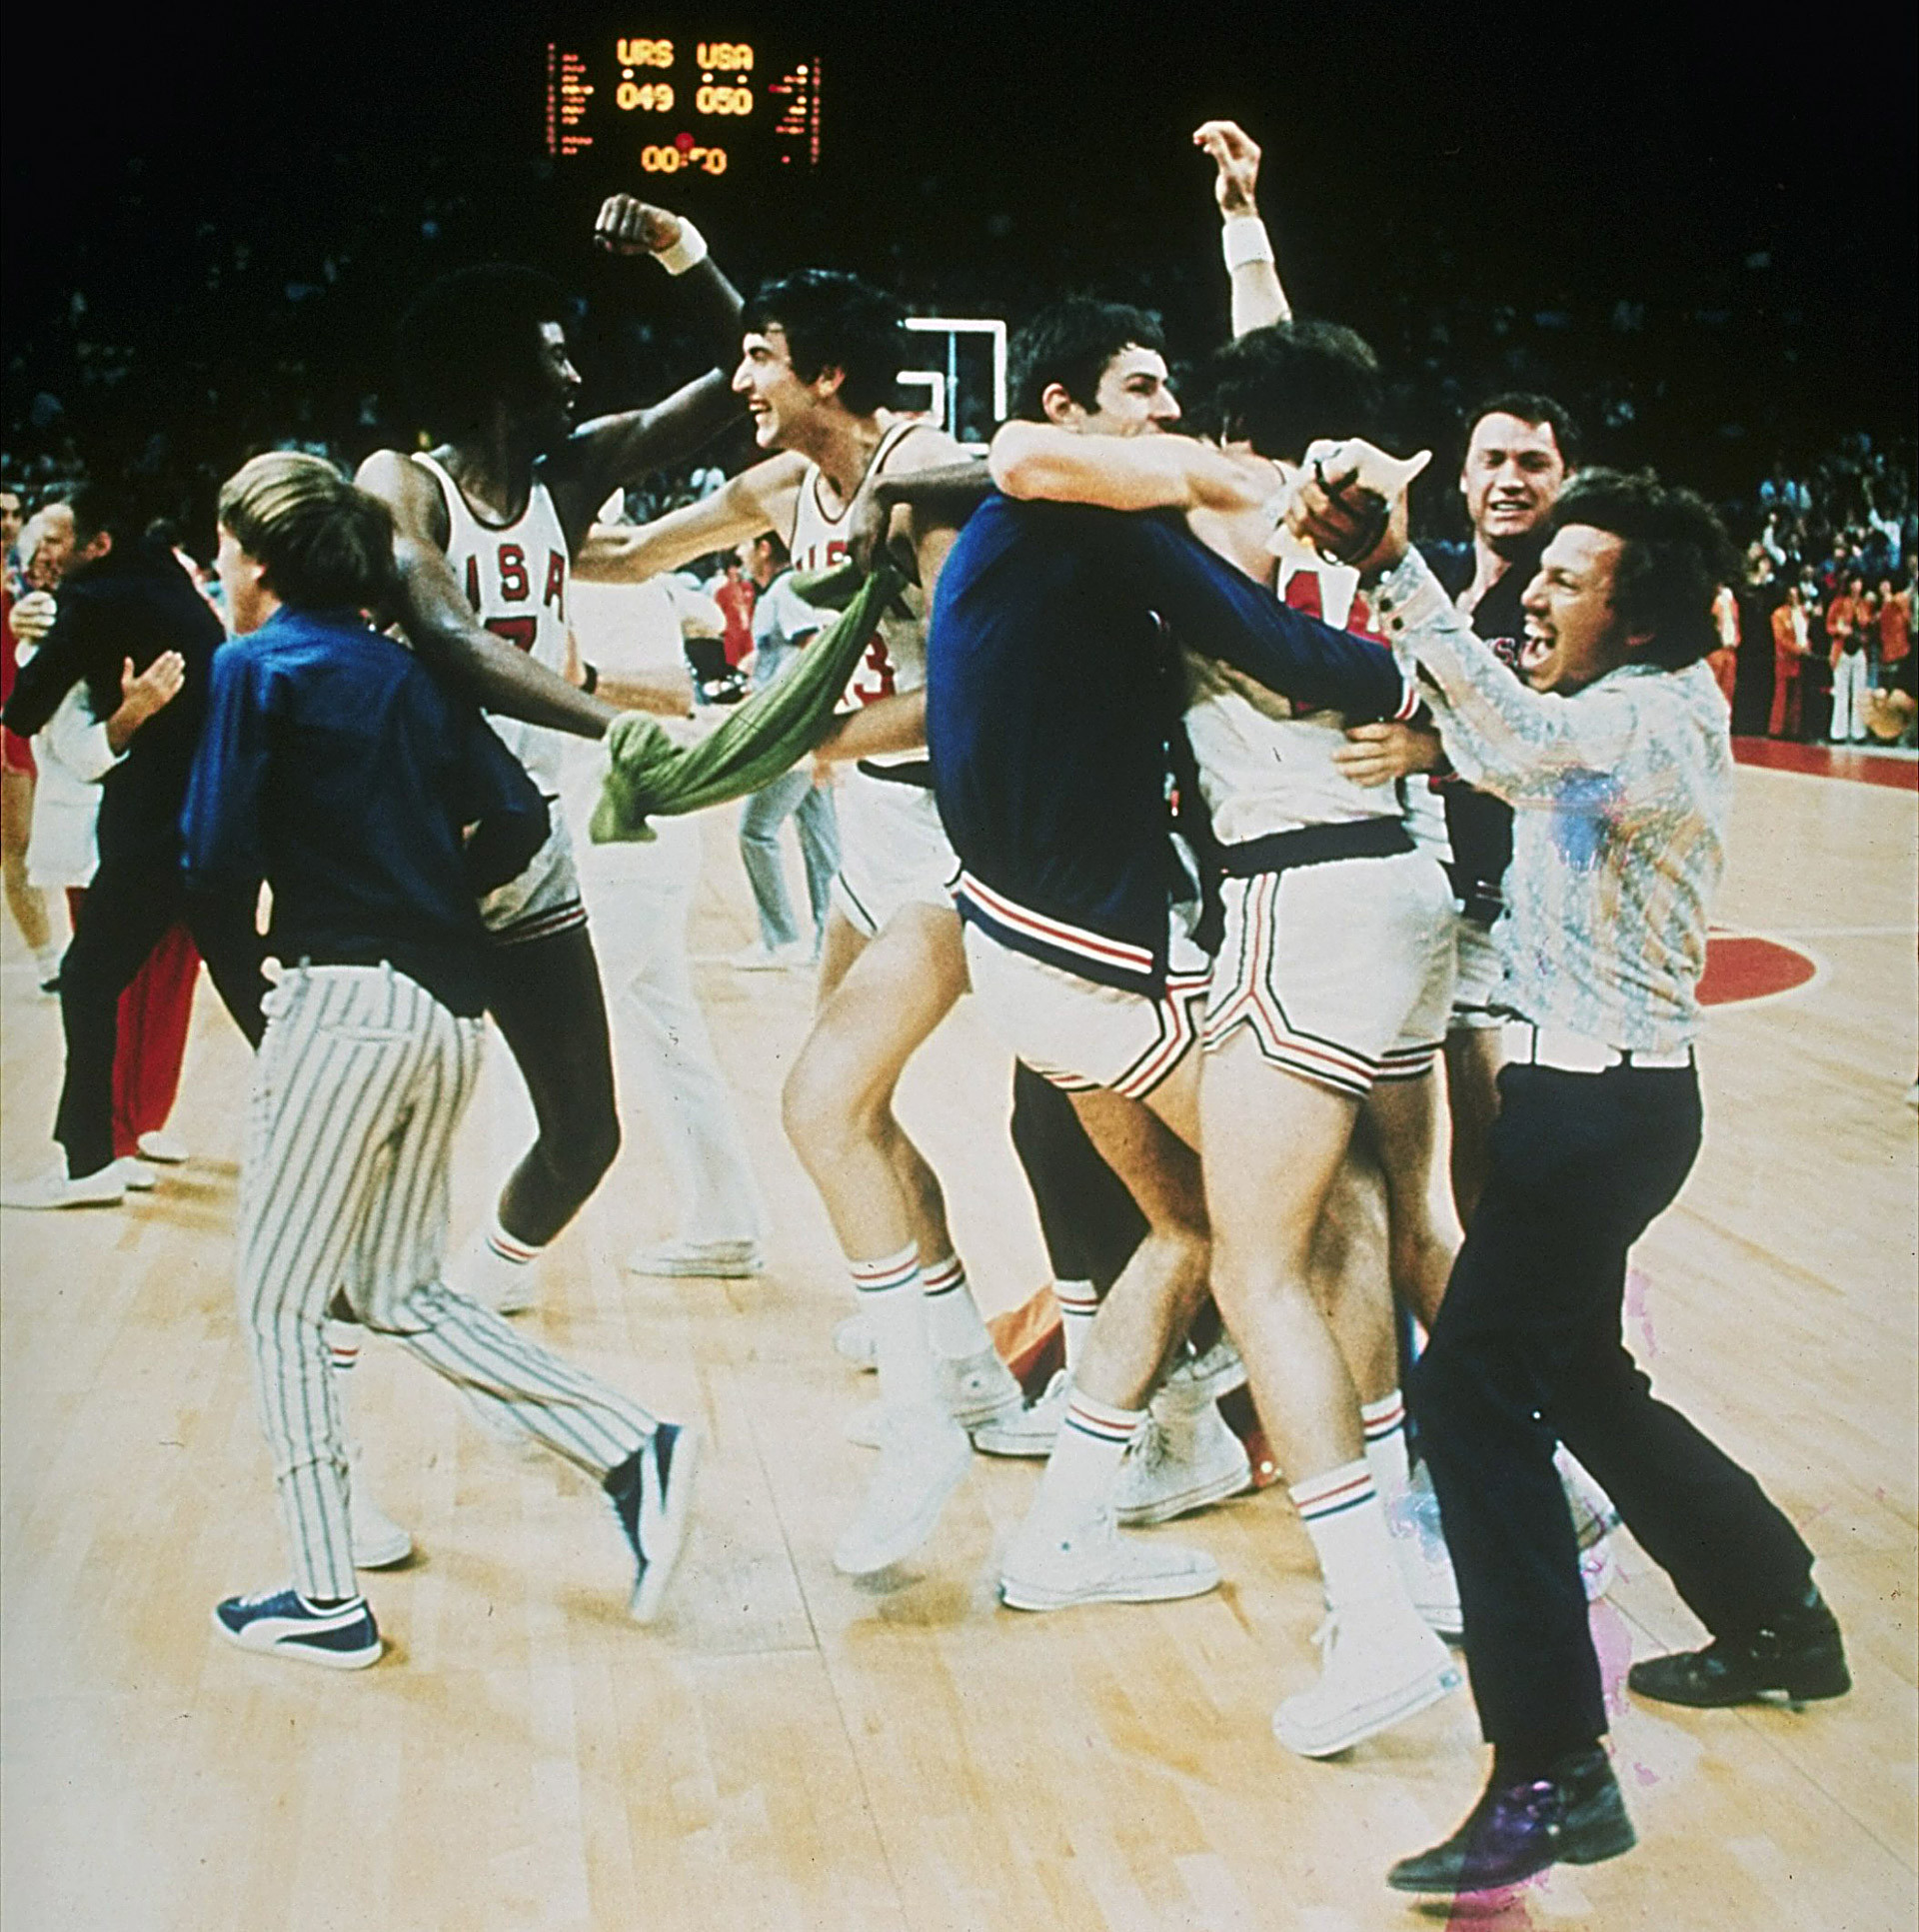 United States basketball team players enjoy a brief moment of elation